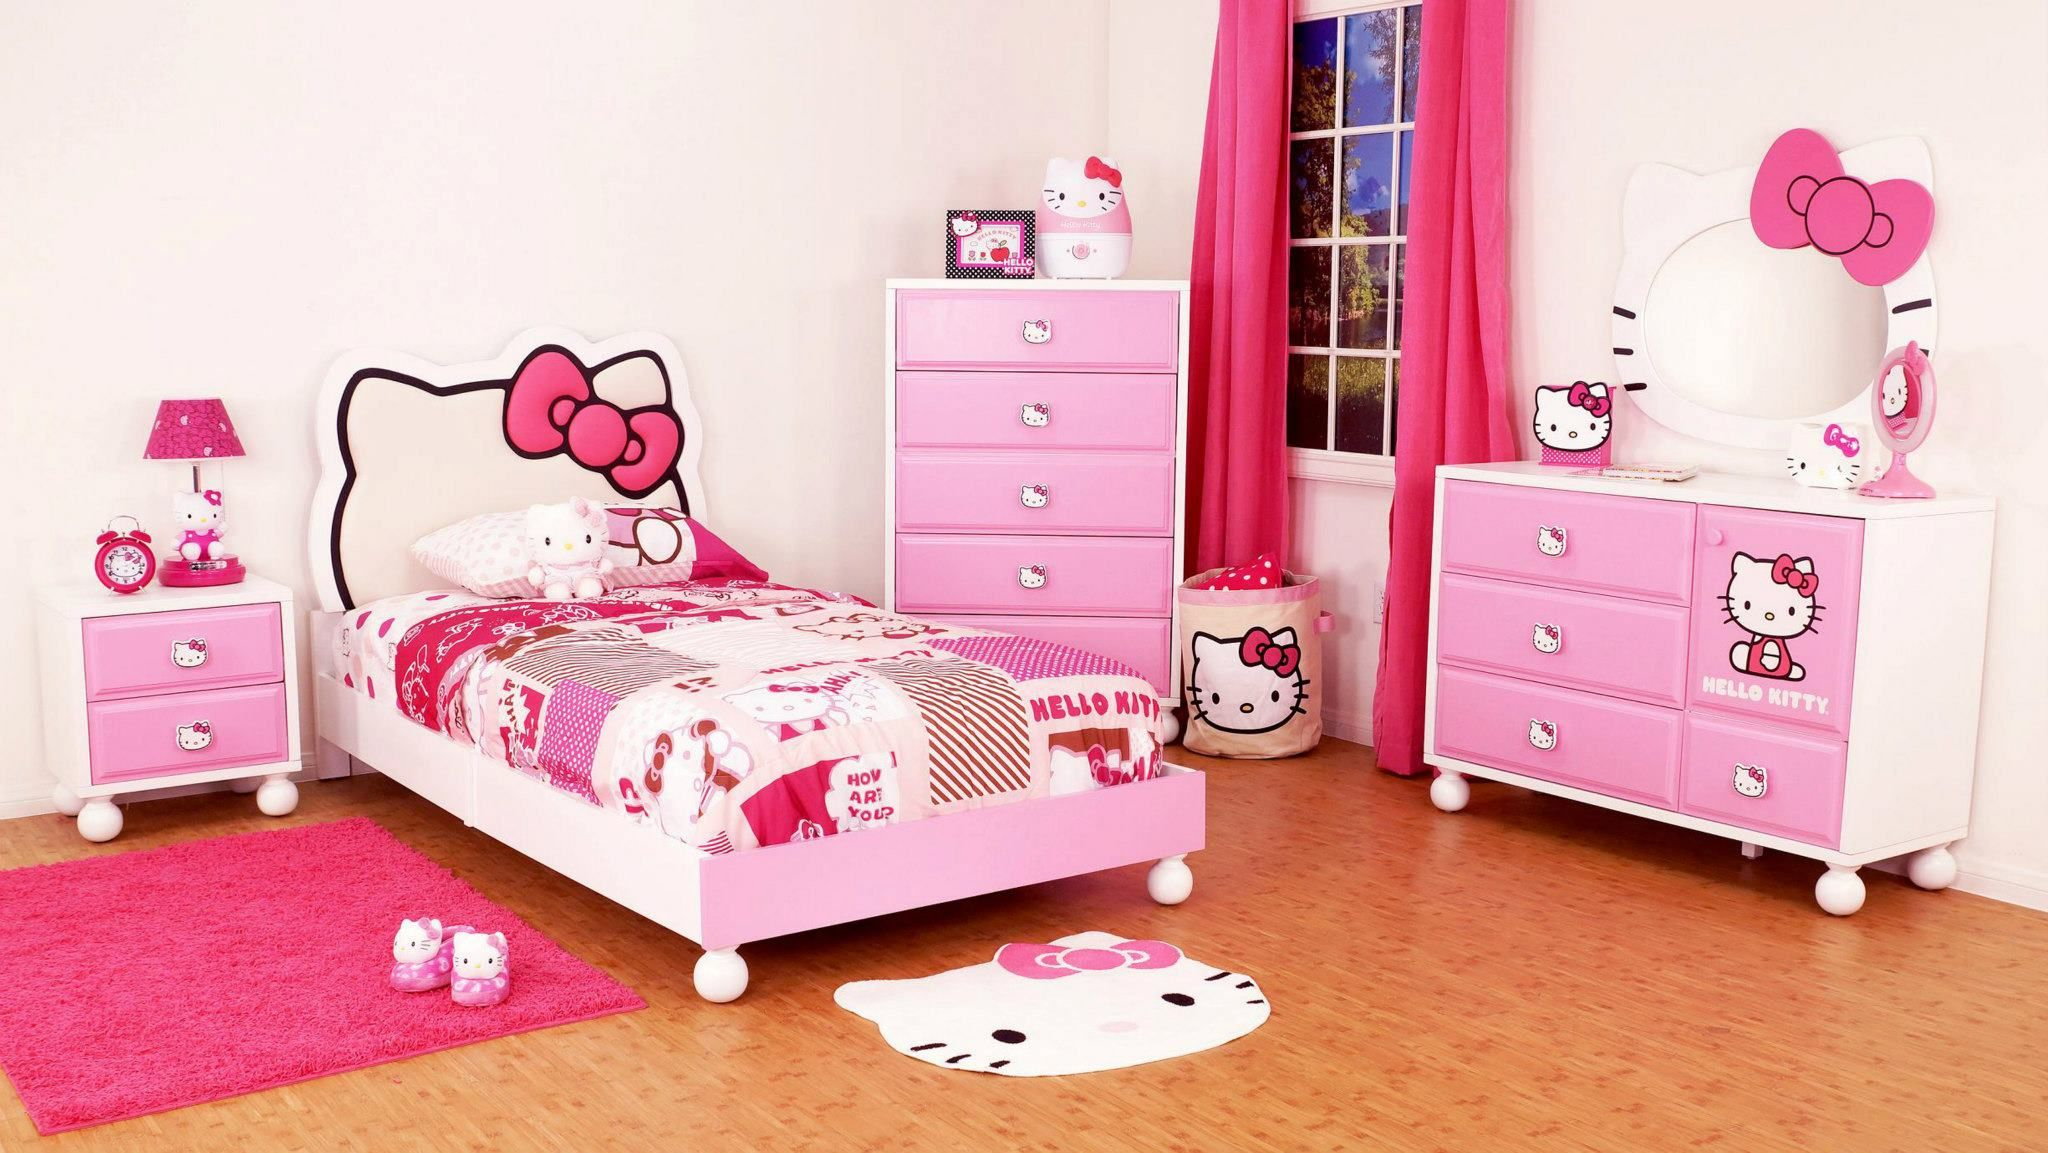 hello kitty bedroom - Google Search